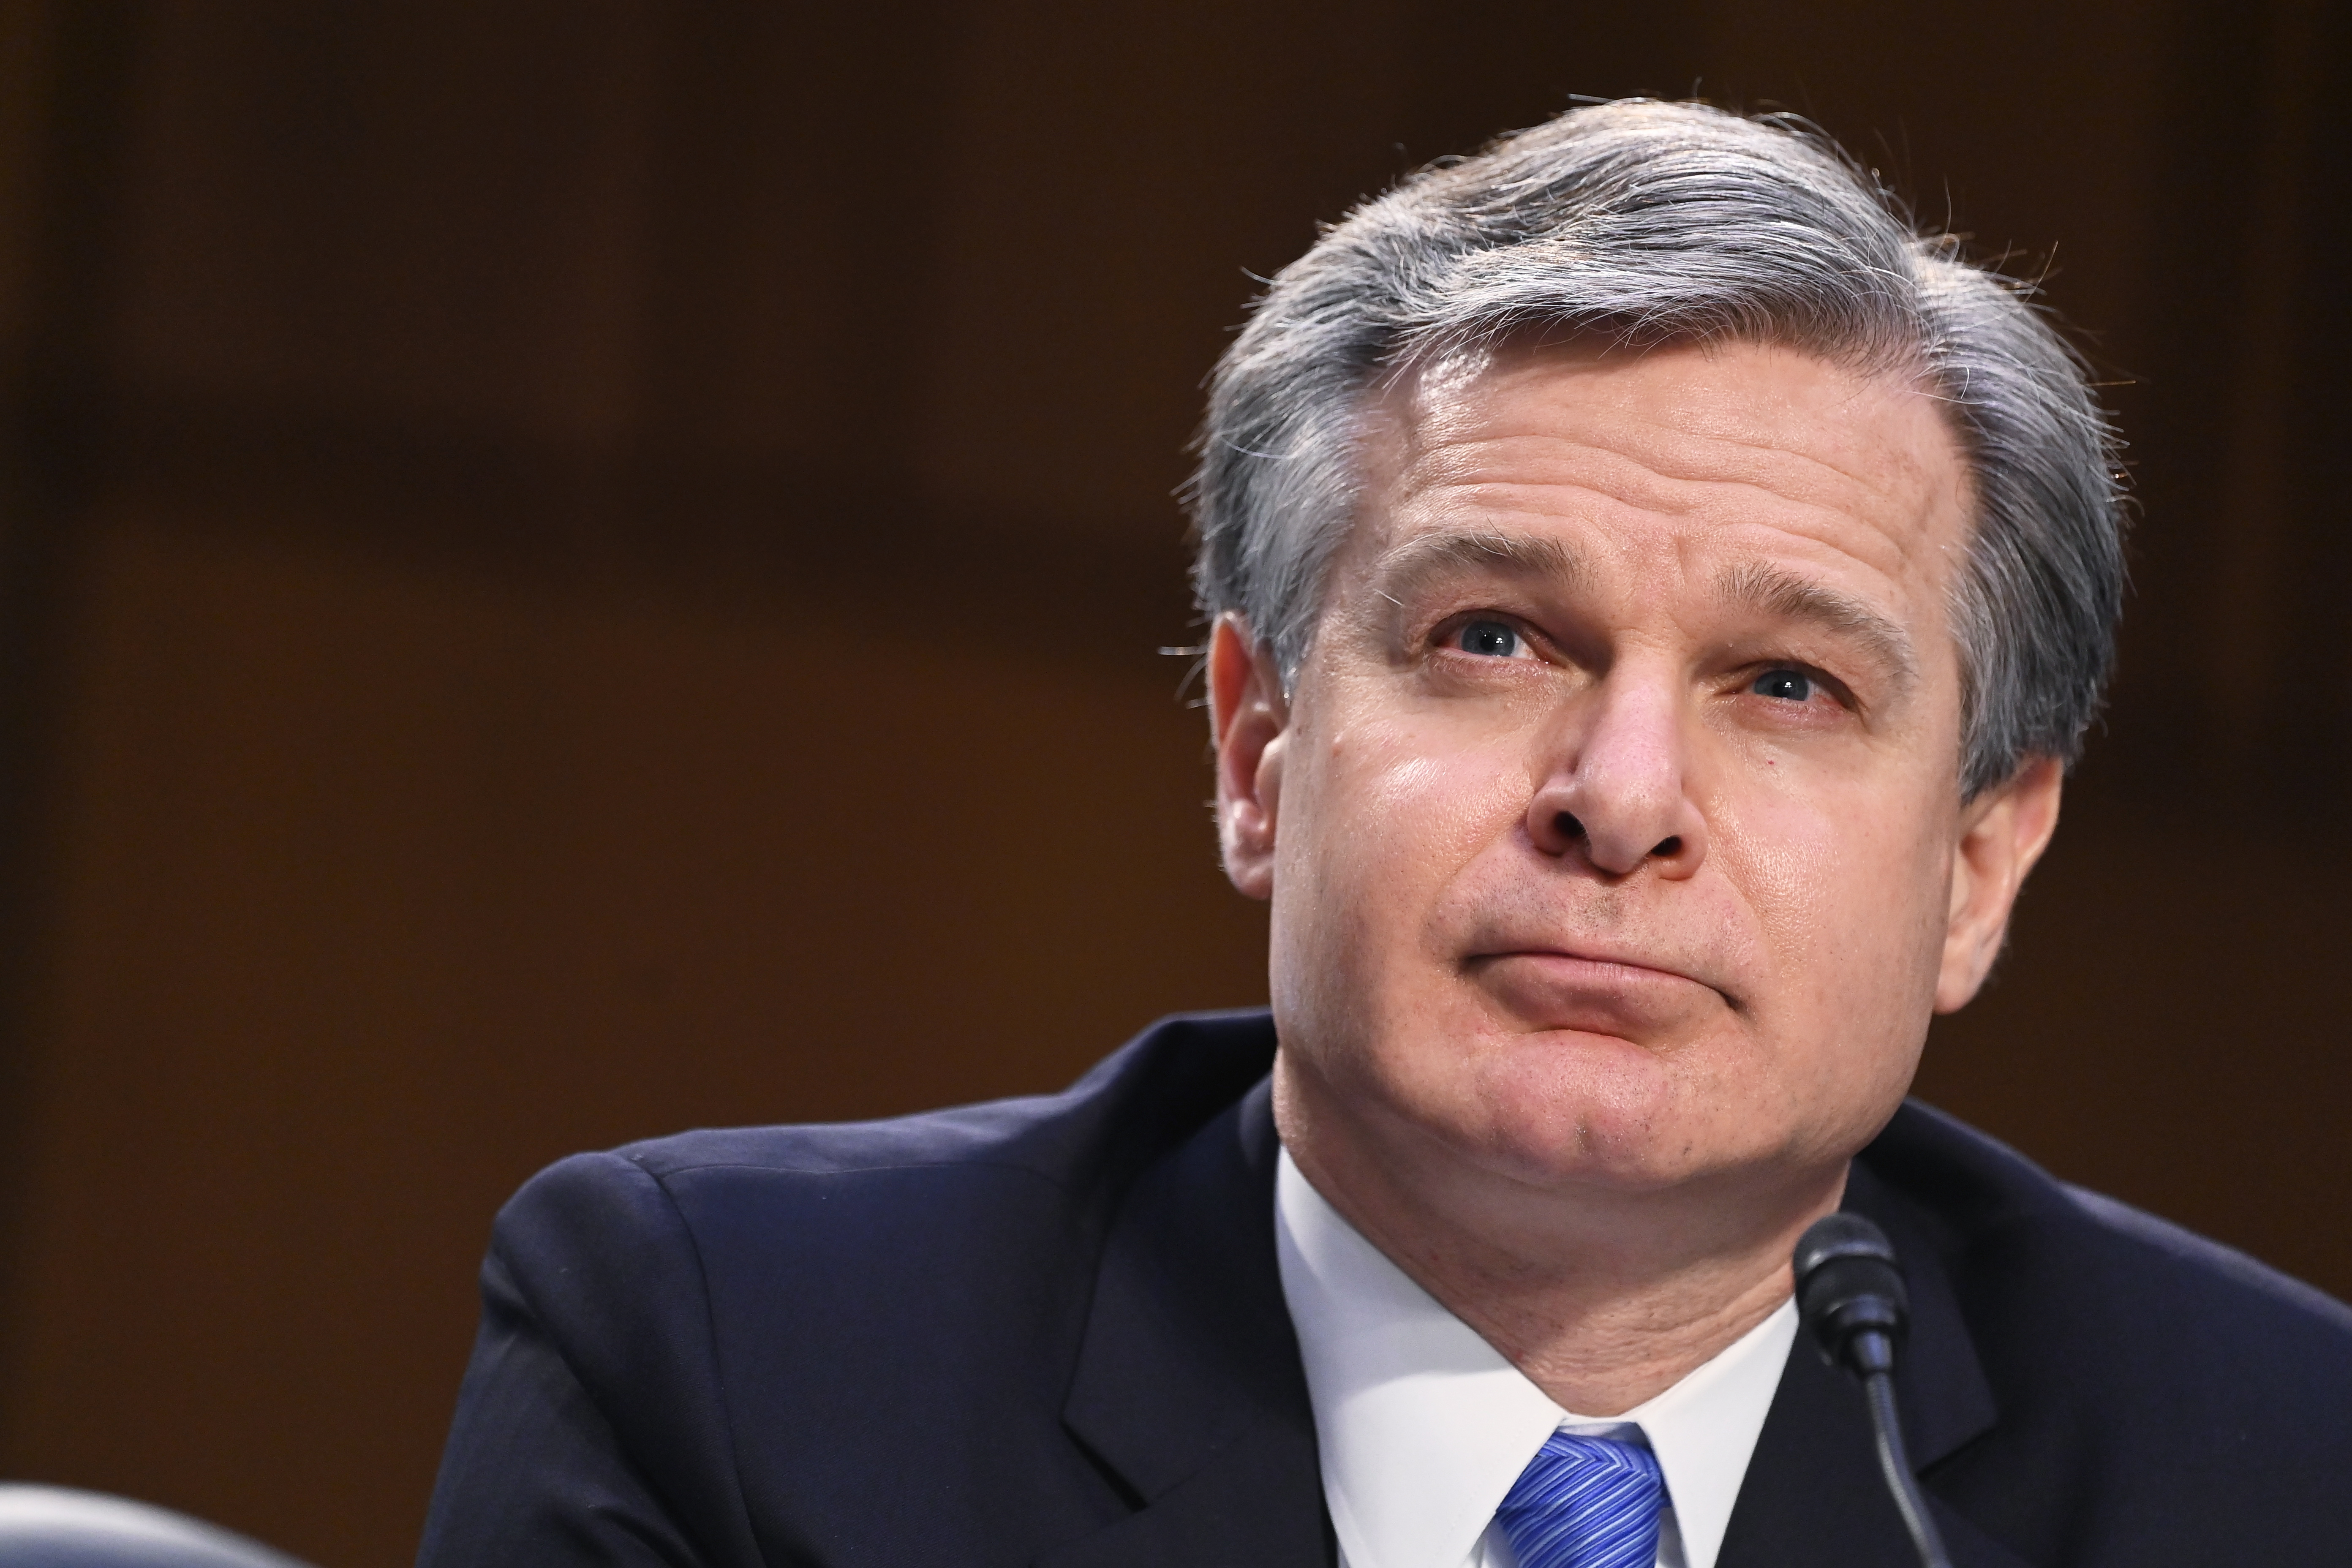 FBI Director Christopher Wray in Washington, DC. (Photo by Mandel Ngan-Pool/Getty Images)